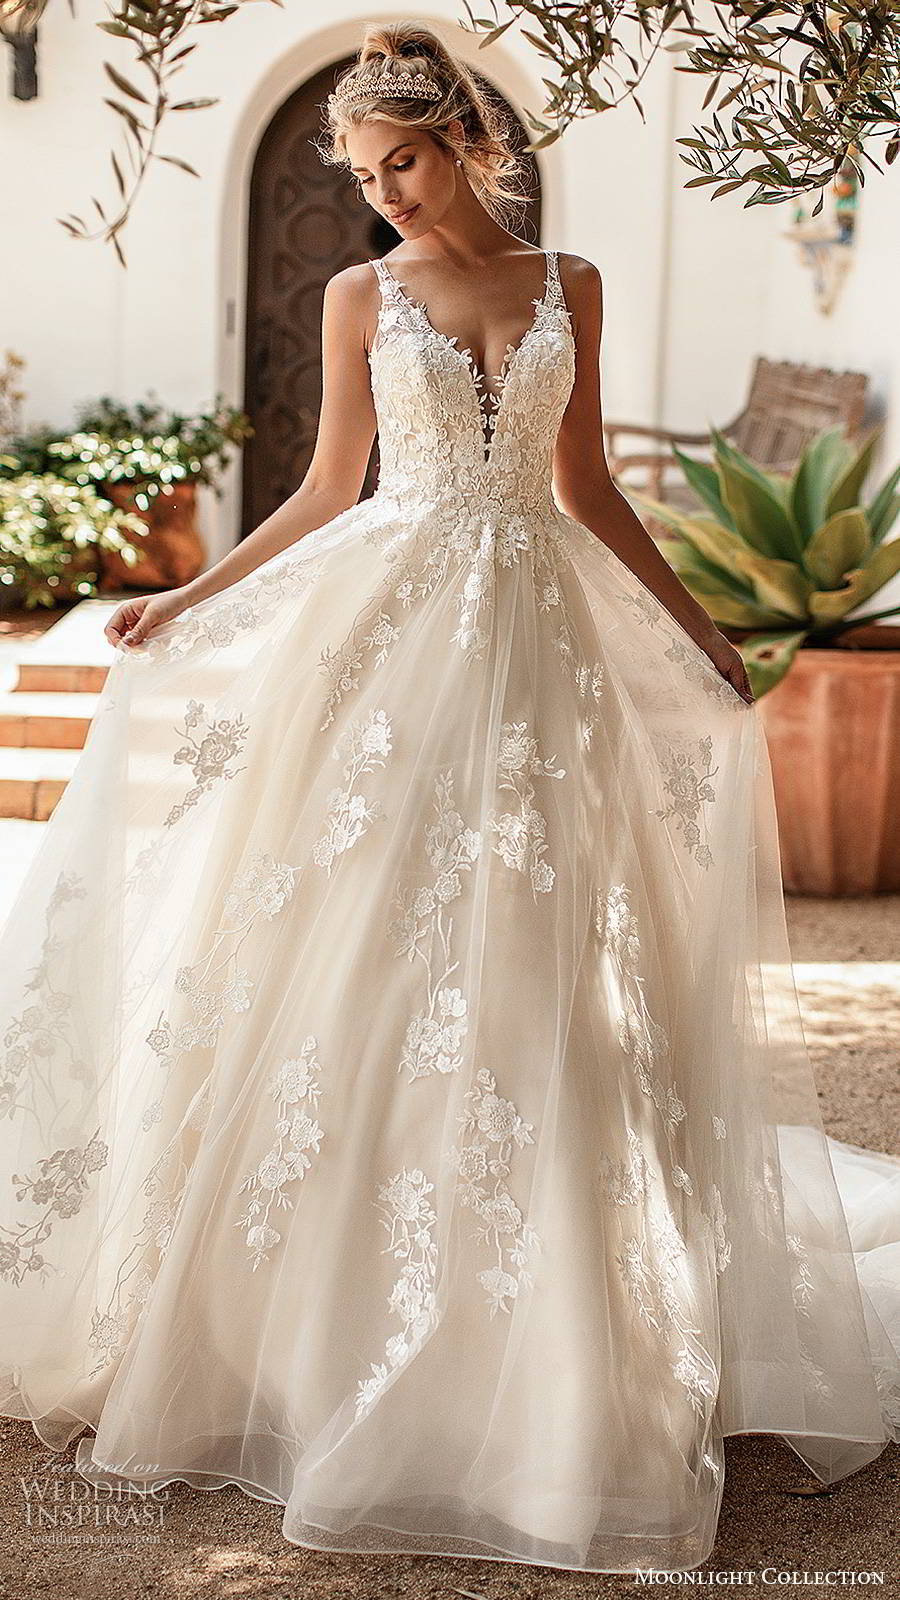 moonlight collection spring 2020 bridal sleeveless straps plunging v neckline fully embellished romantic lace a line ball gown wedding dress v back chapel train (1) mv